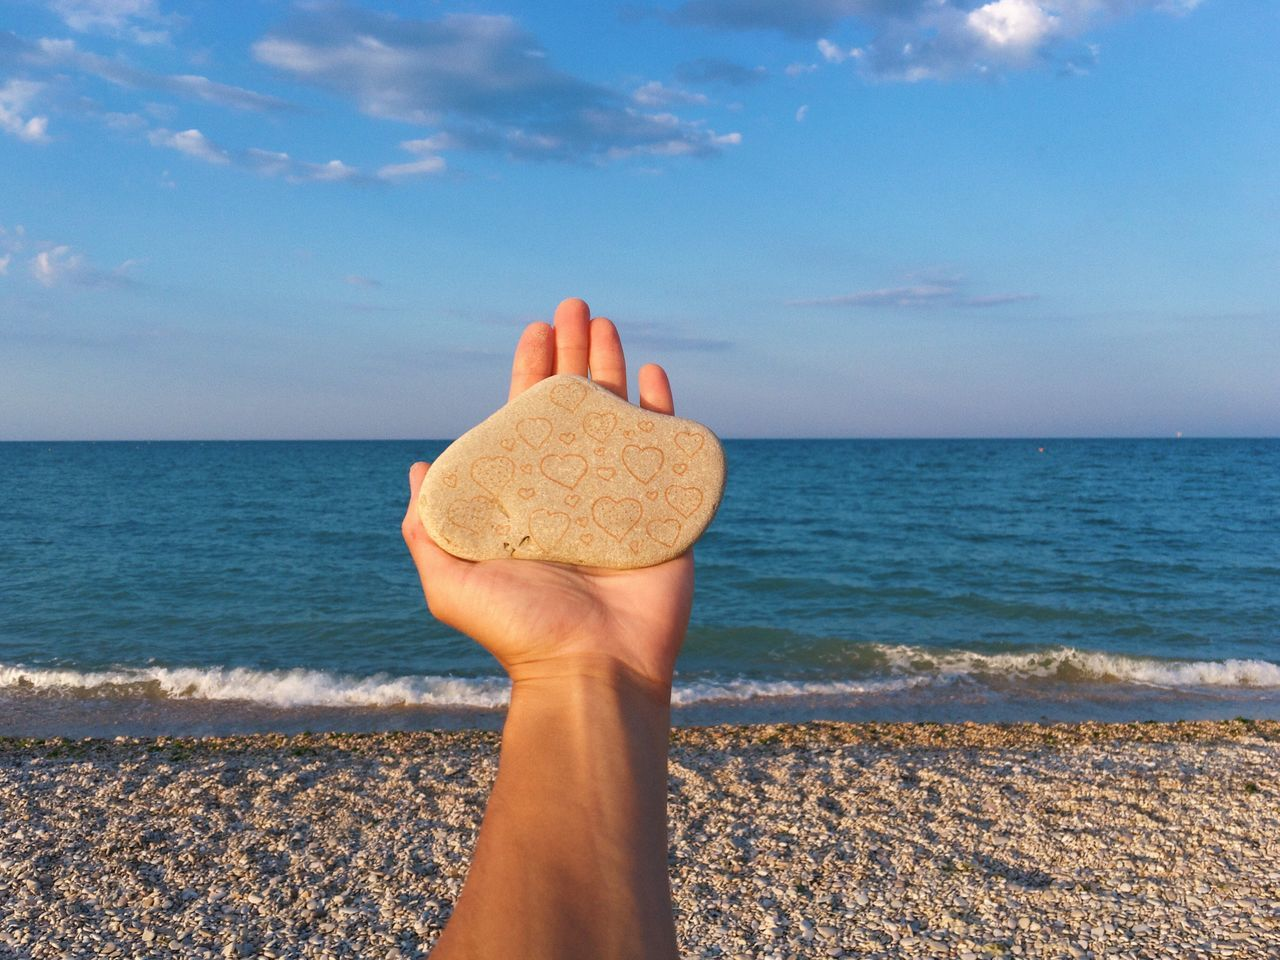 Sea love ❤️... Sea Human Hand Human Body Part Real People Horizon Over Water Water One Person Personal Perspective Beach Sky Human Finger Lifestyles Leisure Activity Outdoors Nature Day Beauty In Nature Cloud - Sky Sand Close-up Love Summer Stone Art Stone Holding